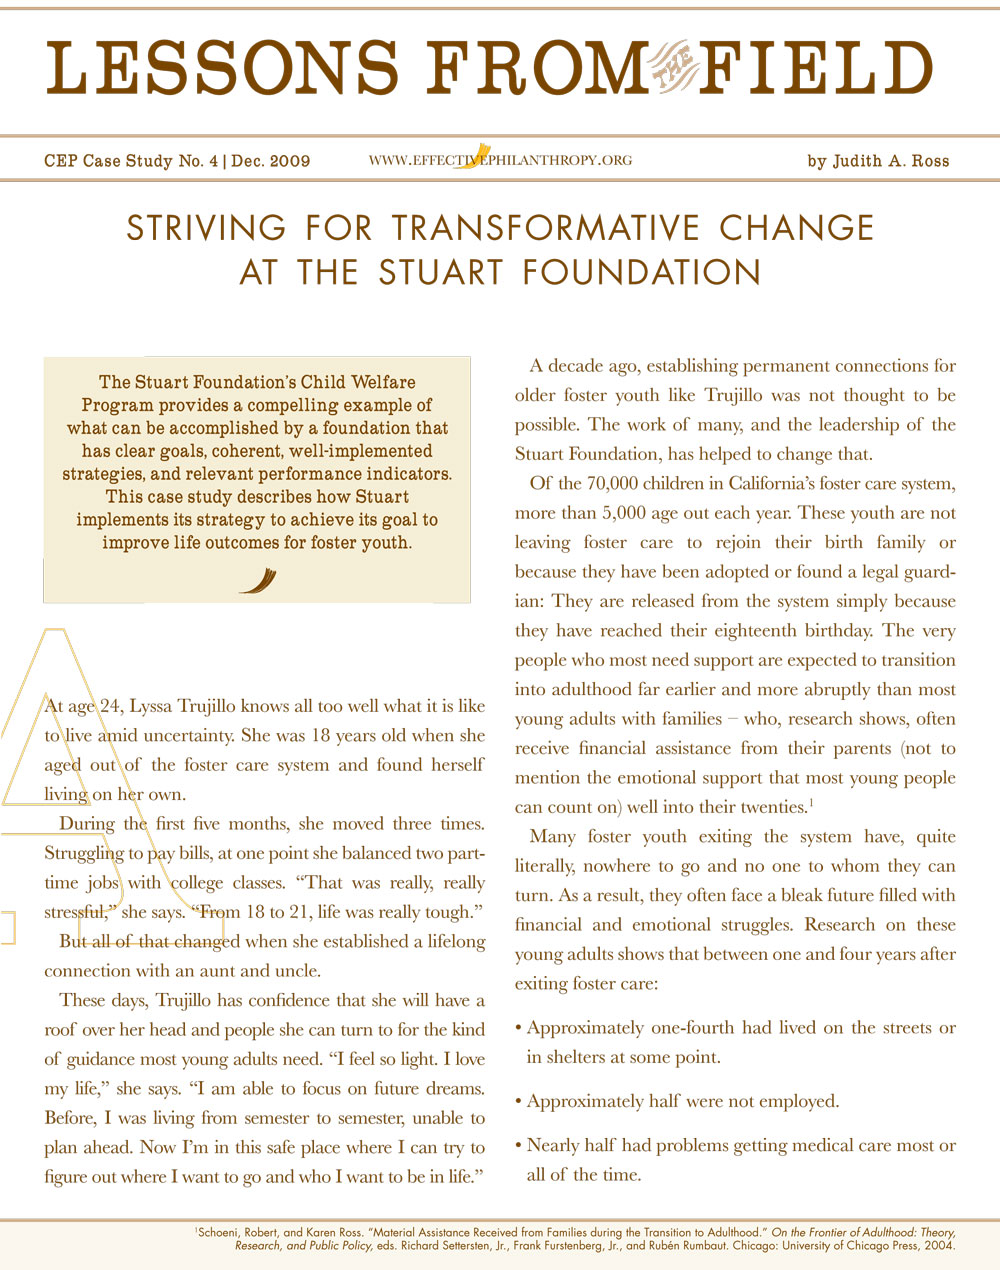 Lessons from the Field: Striving for Transformative Change at the Stuart Foundation